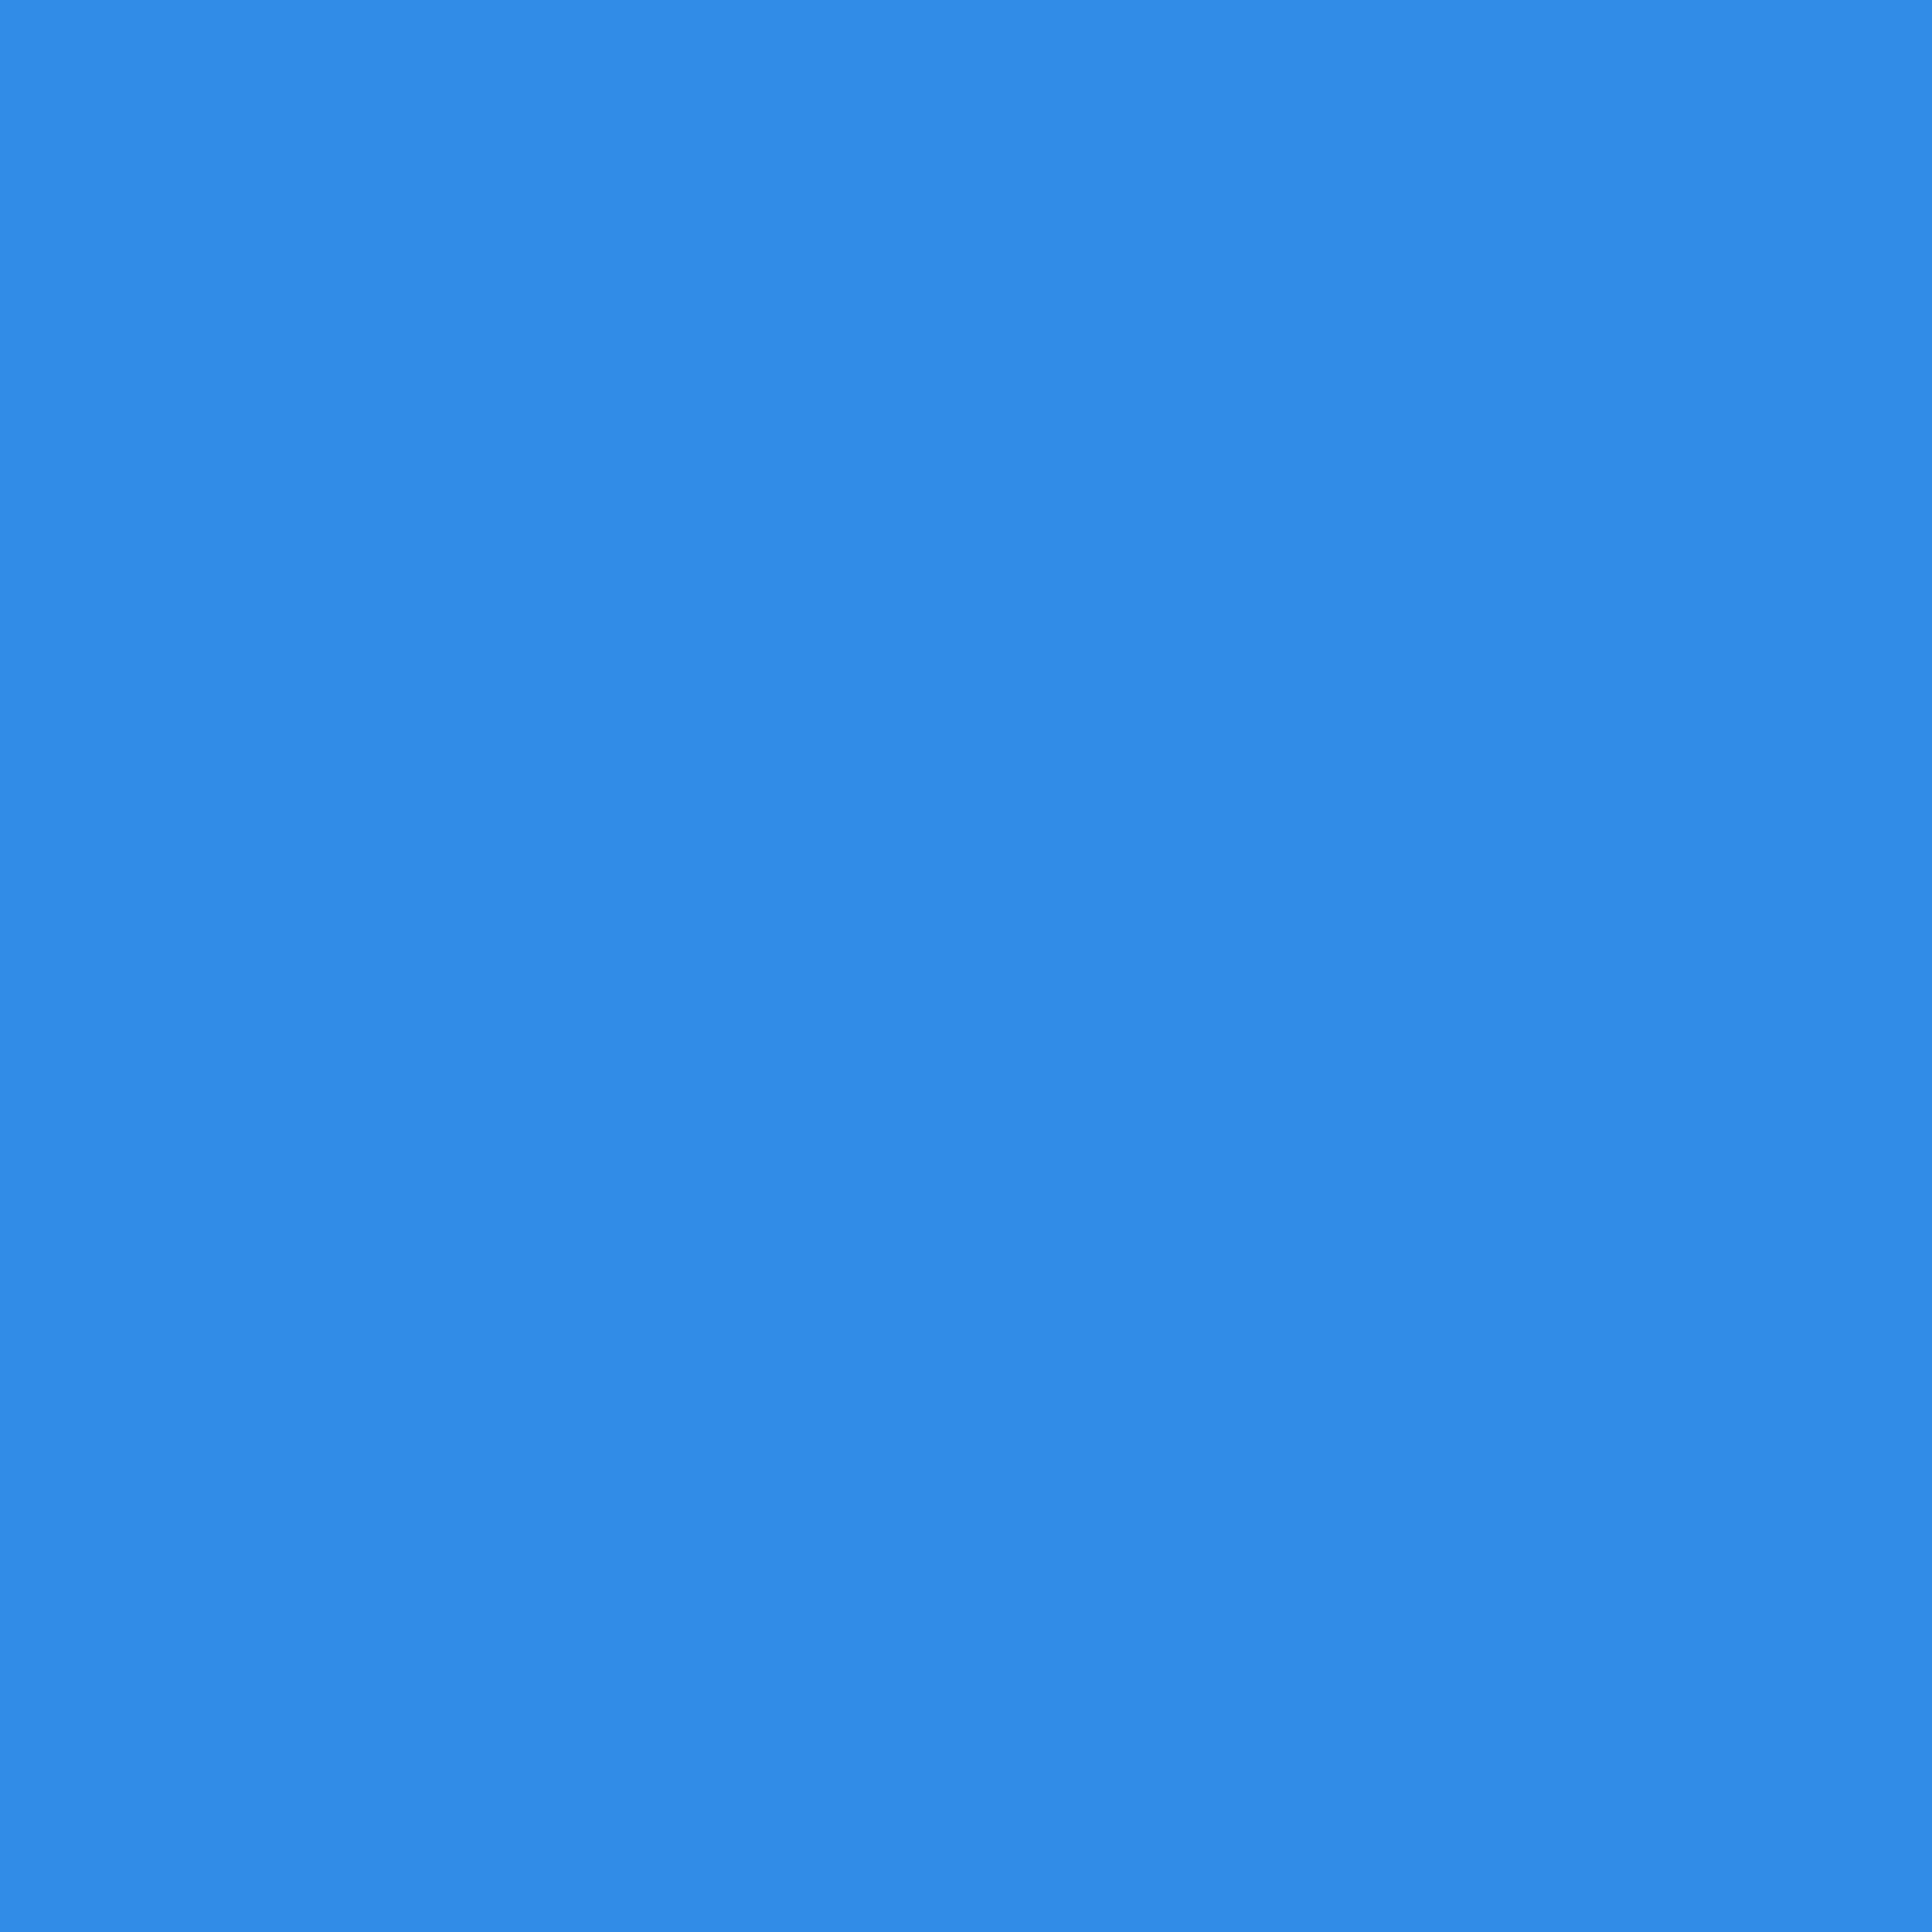 2732x2732 Bleu De France Solid Color Background